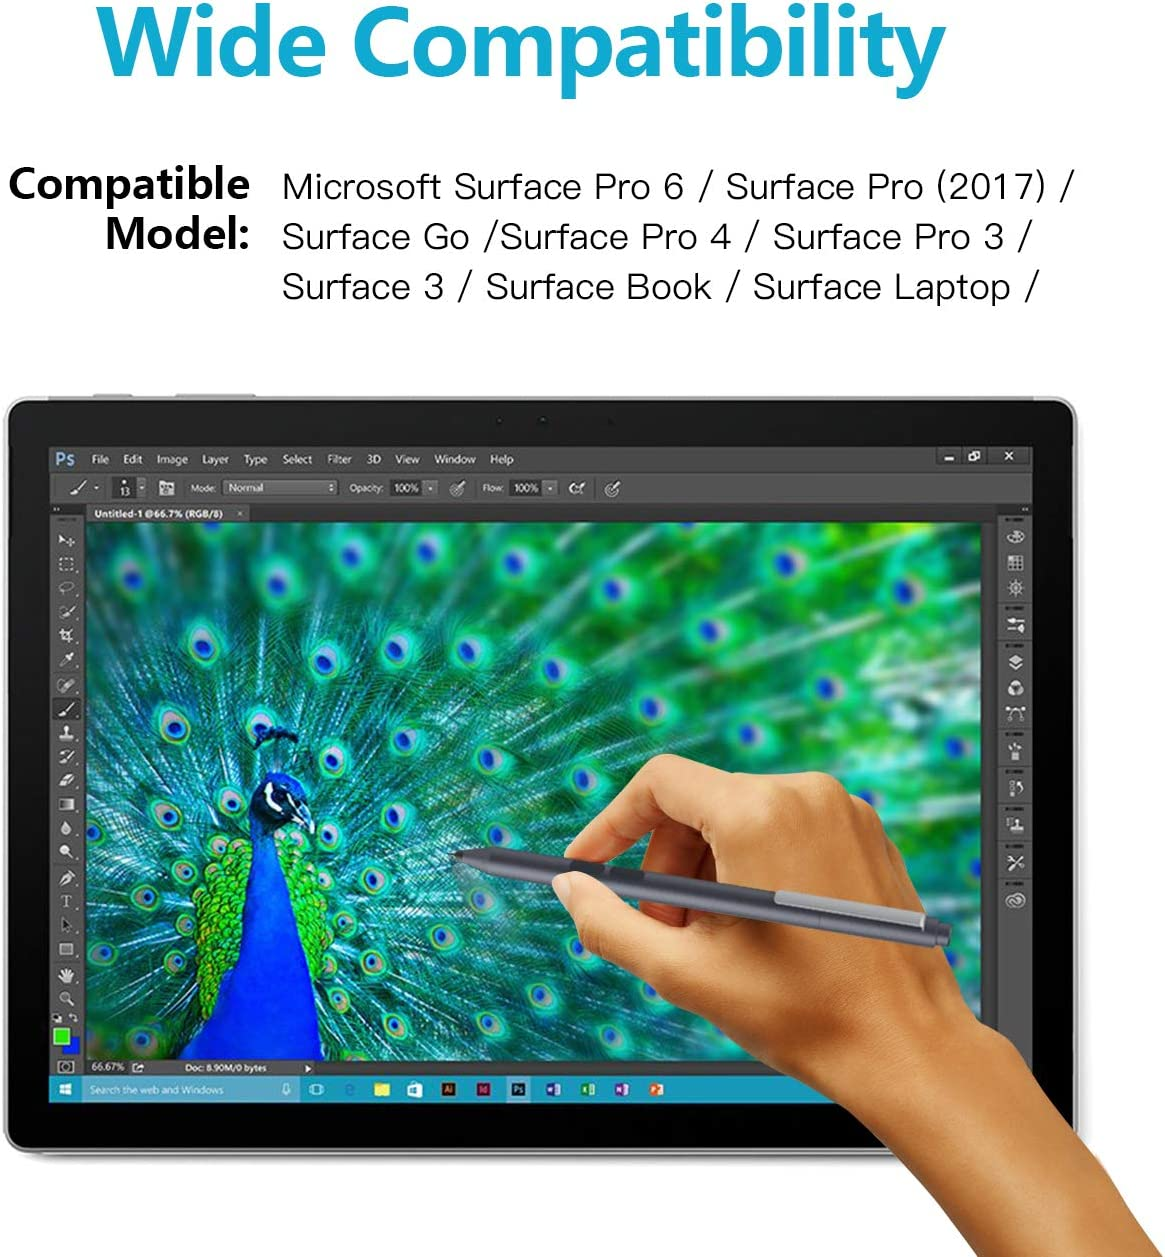 Surface Pen for Microsoft Surface Models Space Gray TiMOVO Stylus Pen 1024 Pressure Sensitivity and Palm Rejection for Surface Pro Surface Book,Studio Surface Go Surface Laptop